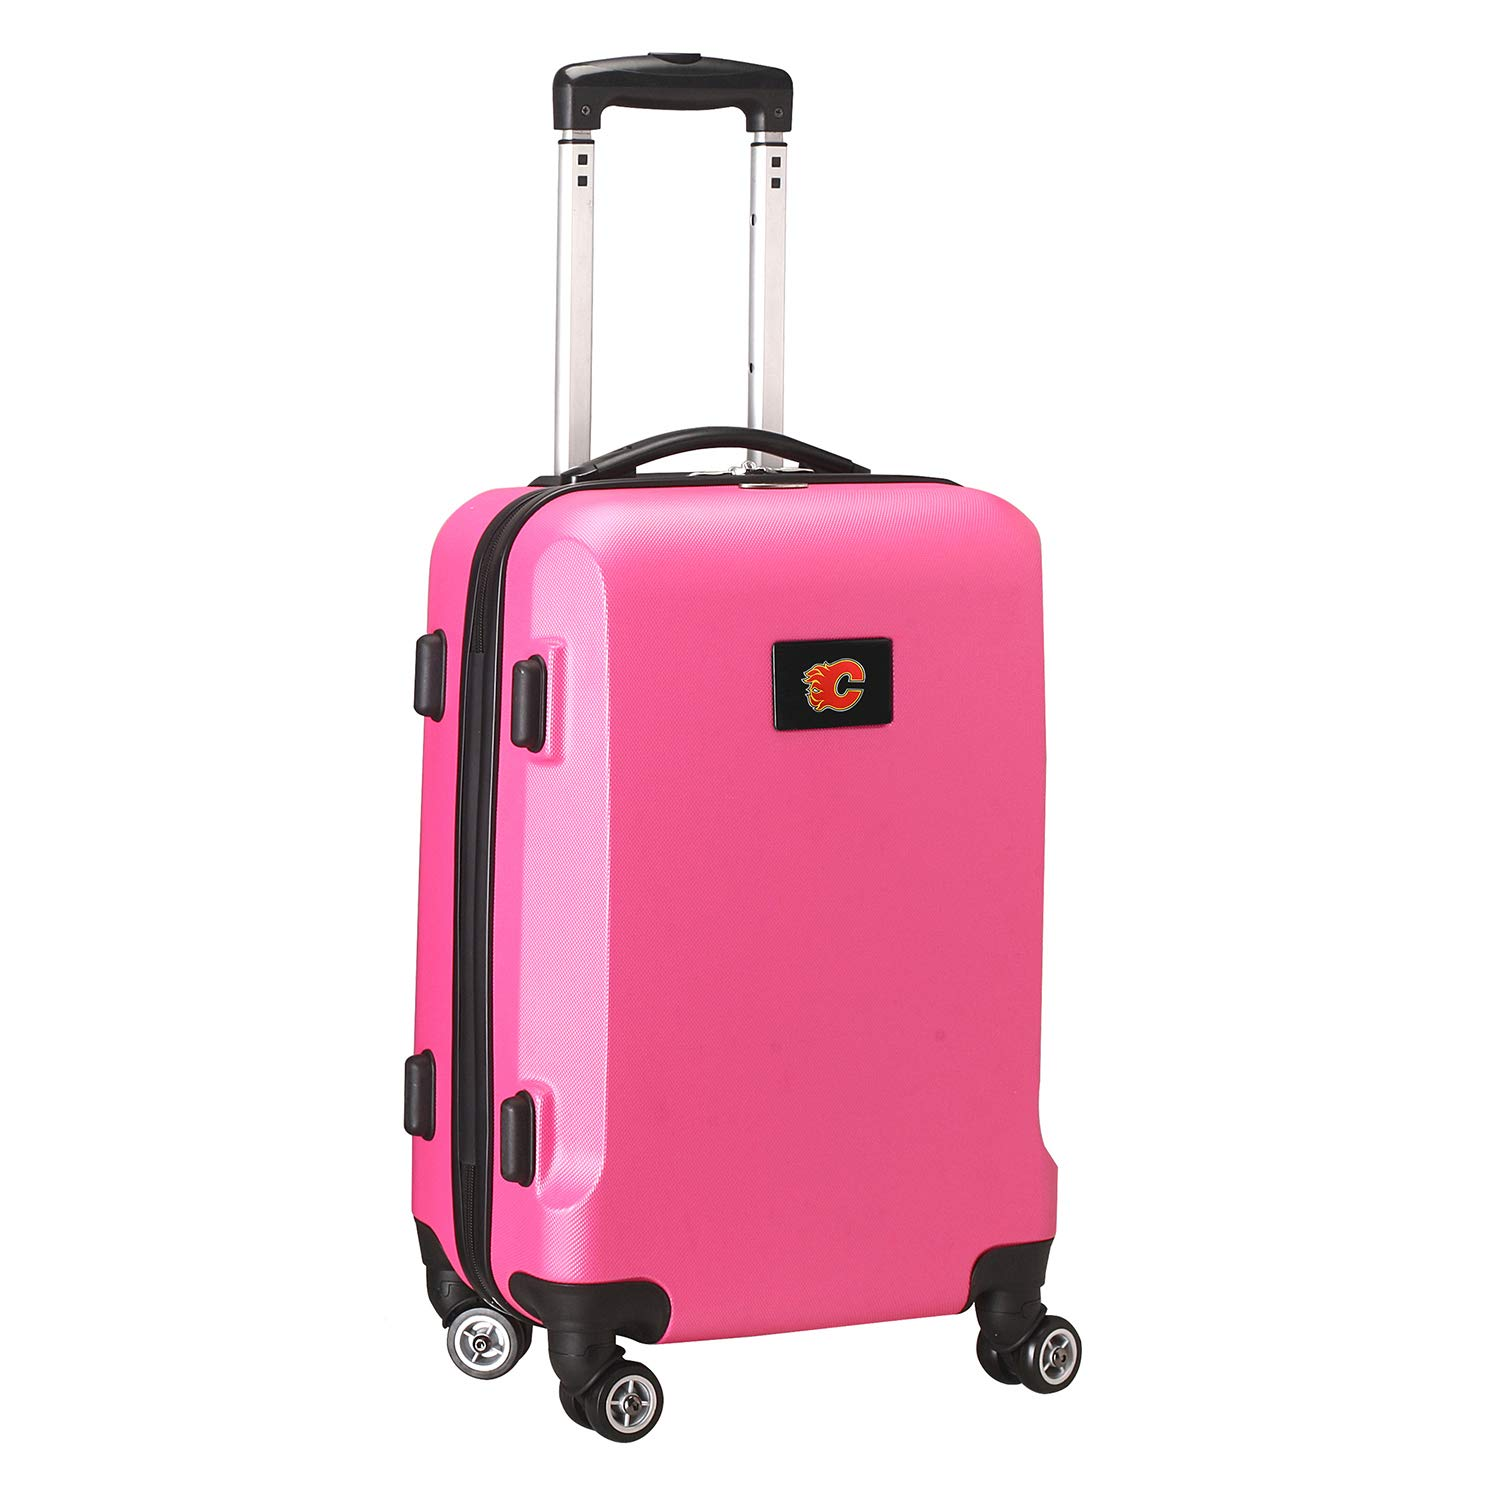 Denco NHL Calgary Flames Carry-On Hardcase Luggage Spinner, Pink